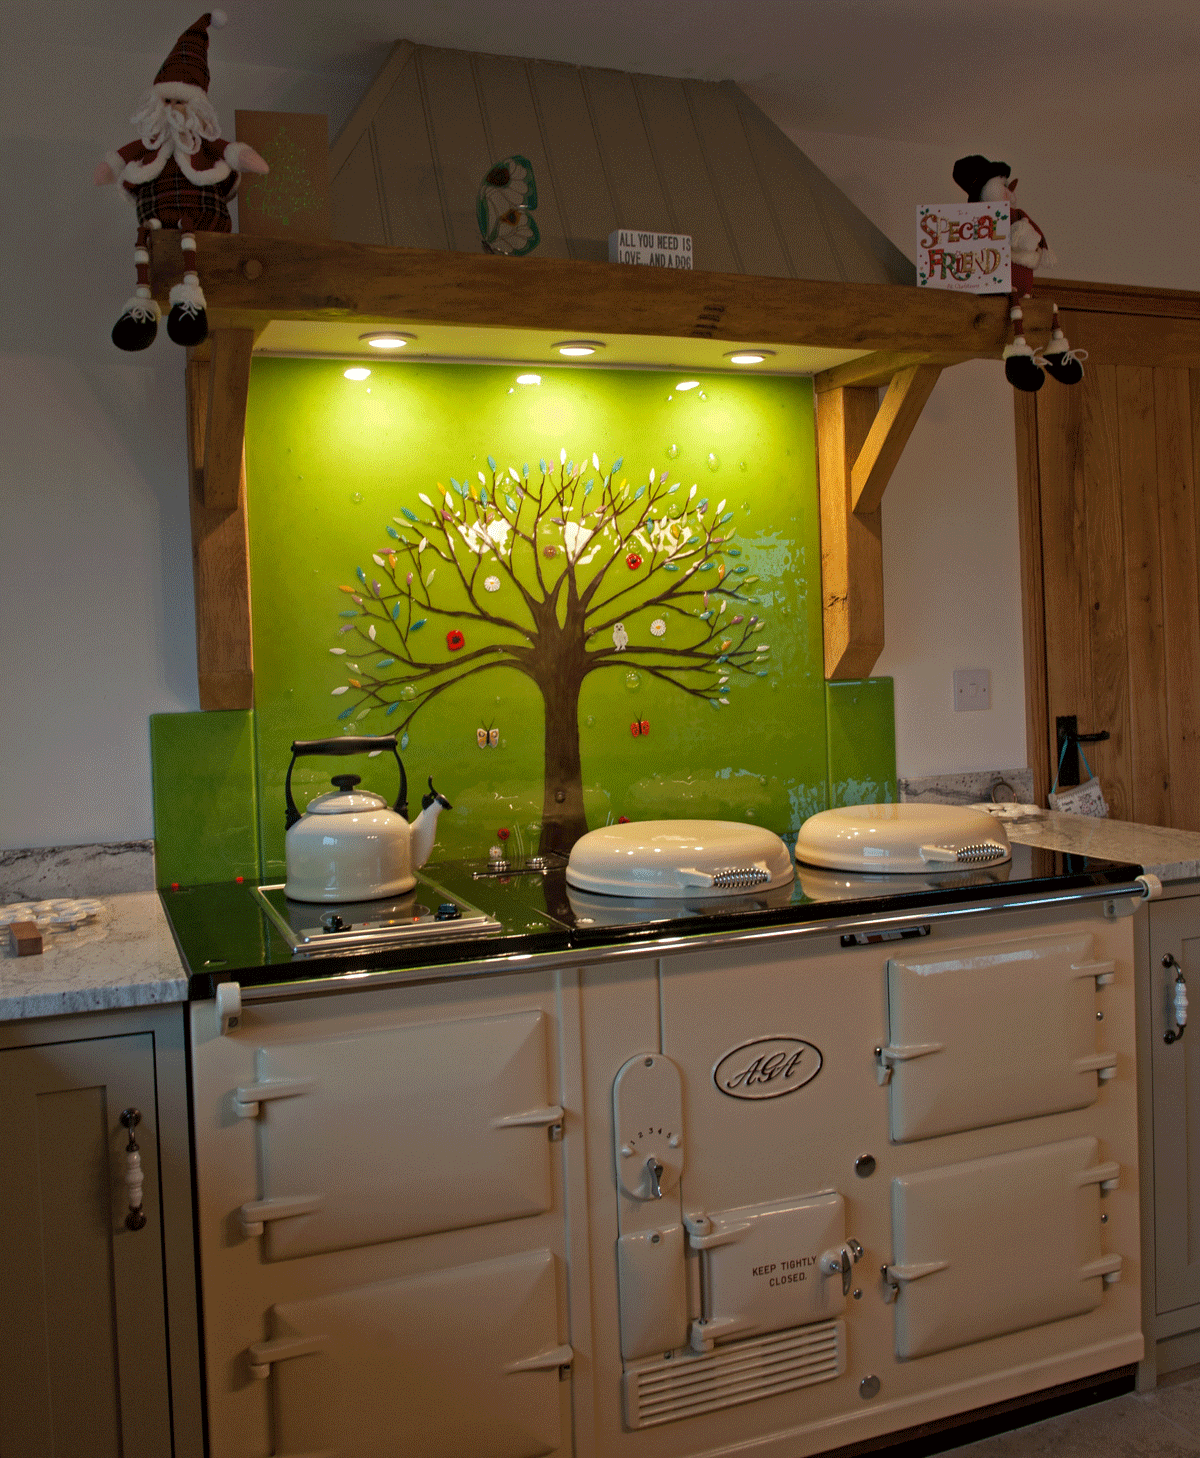 This Kitchen Splashback In Shepton Mallet Features A Tree